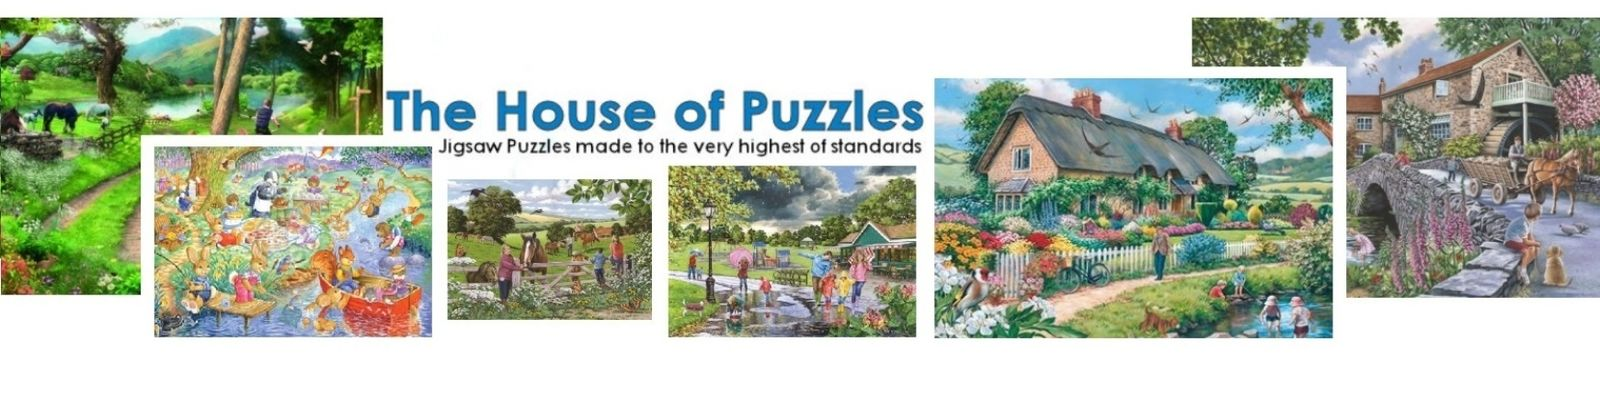 0.The House of Puzzles2.jpg